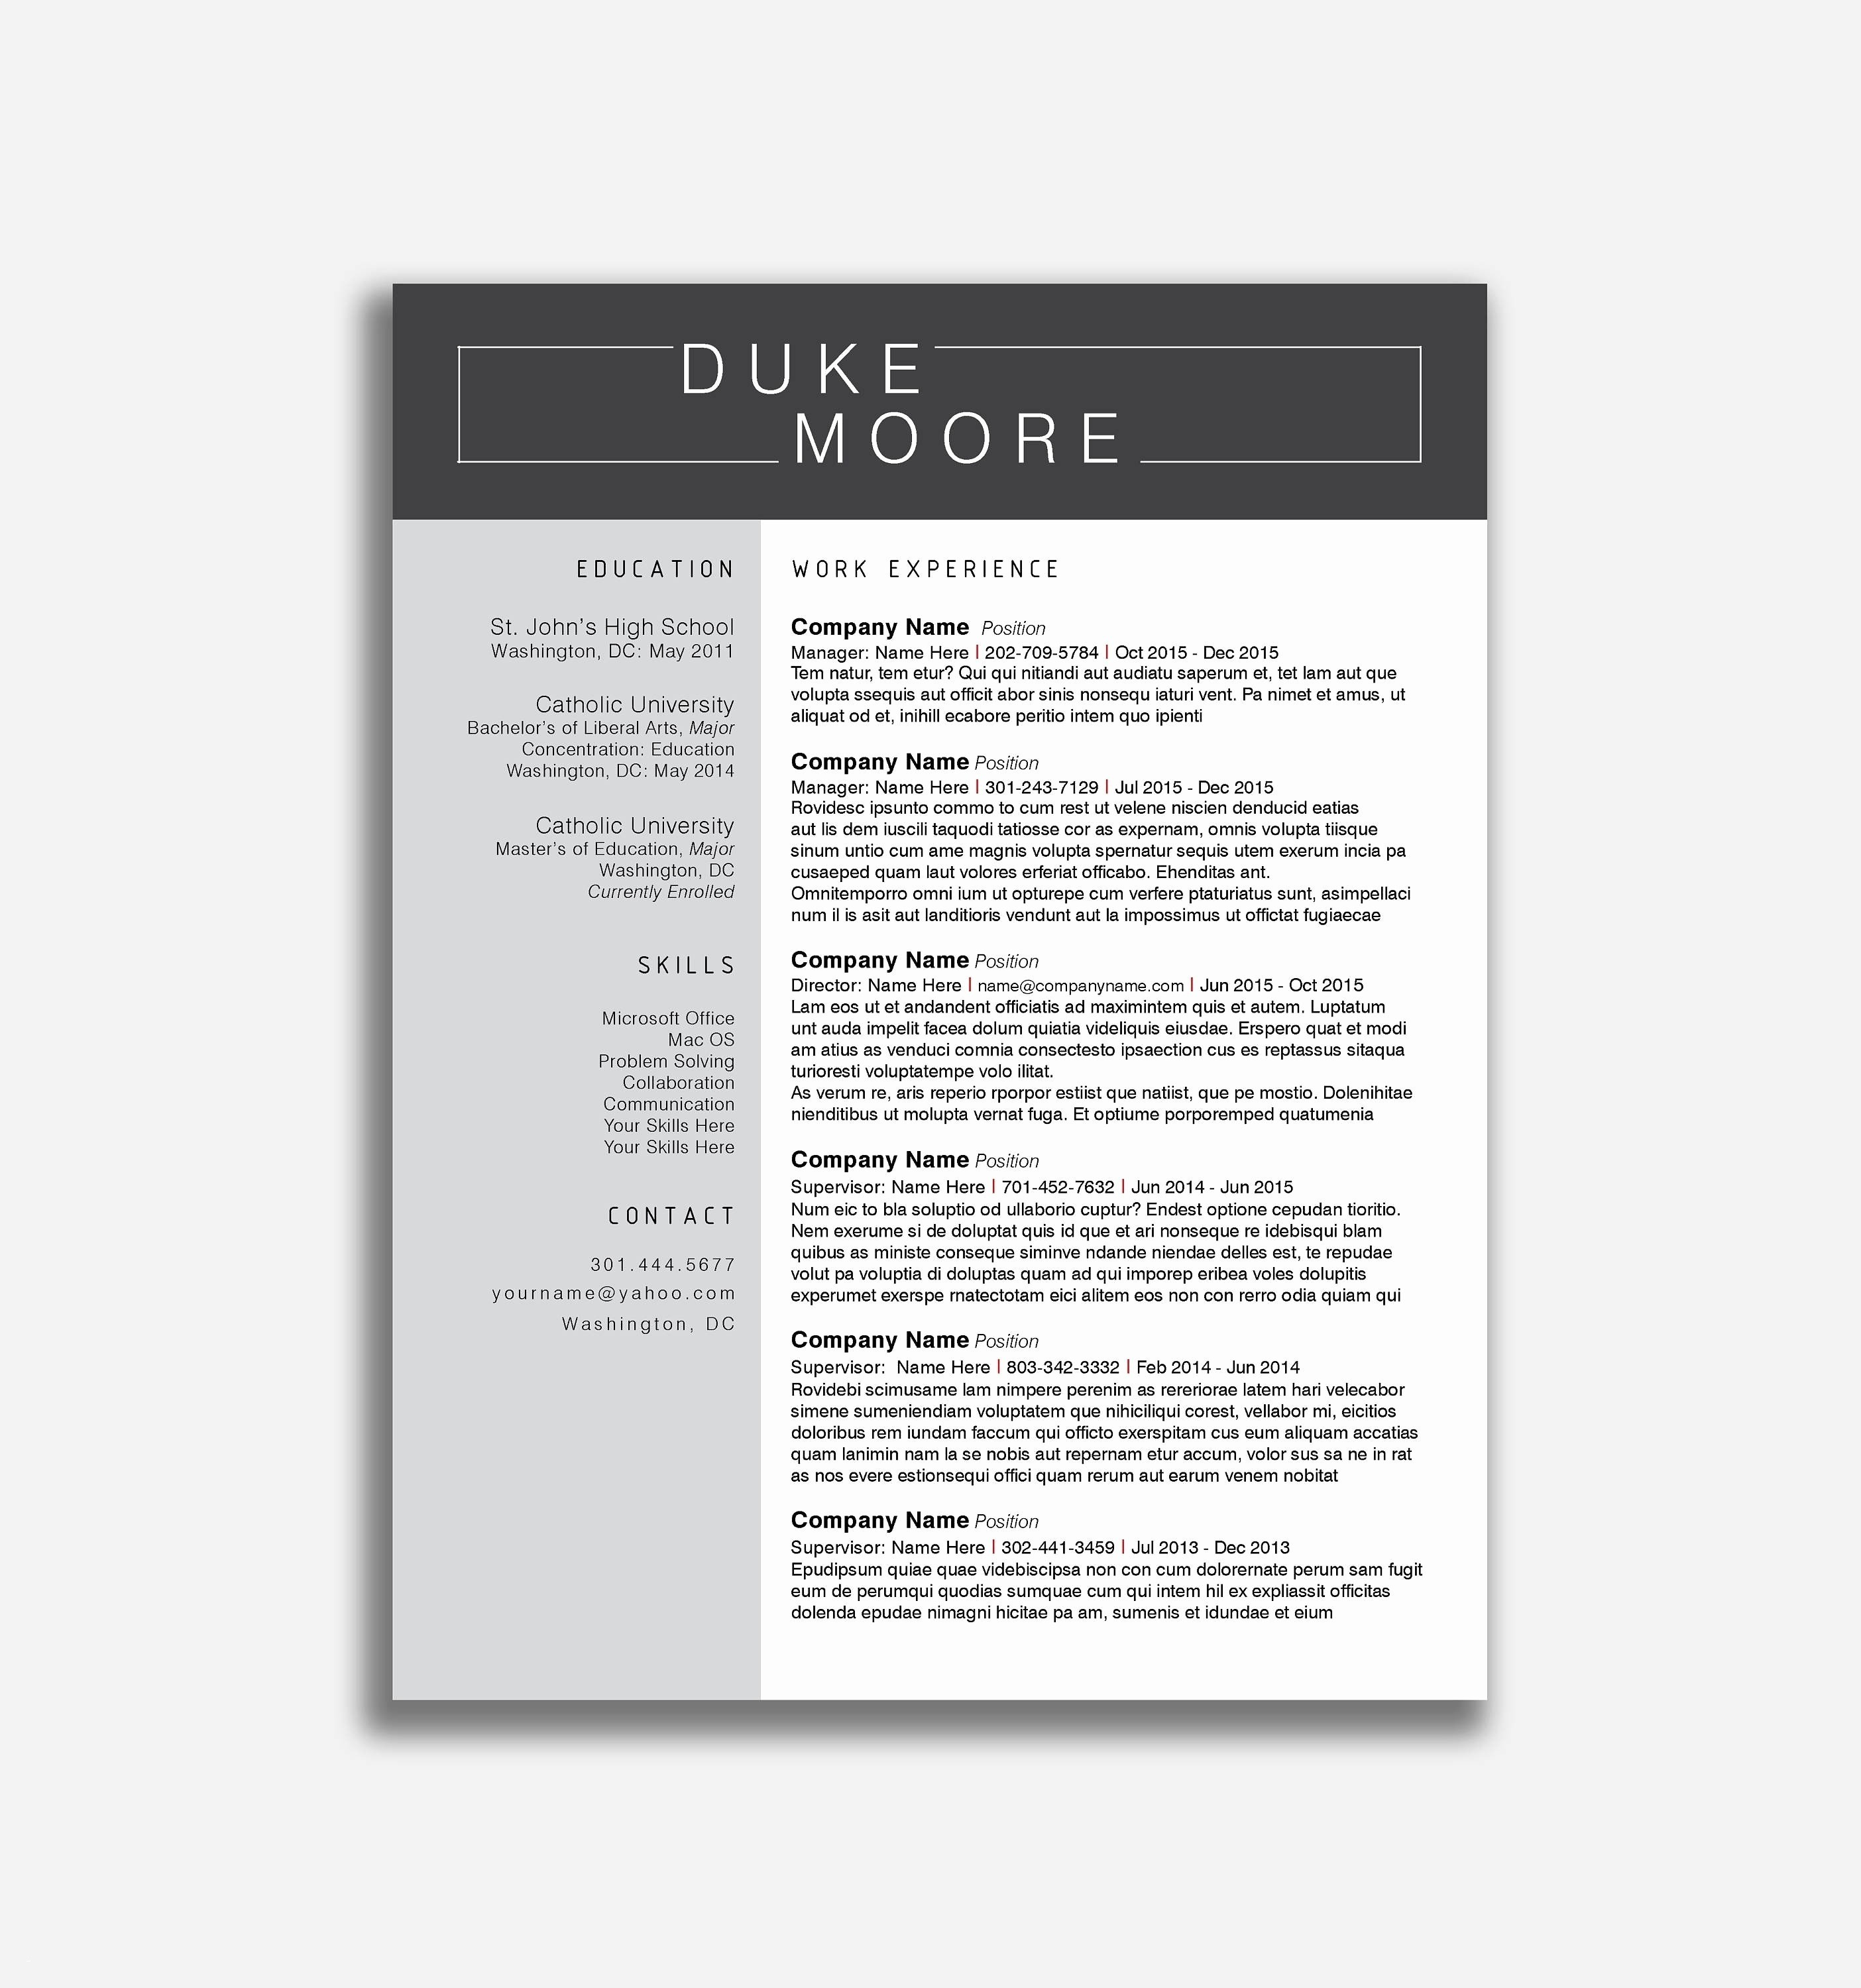 Free Ms Word Resume Templates - Free Resume Templates Downloads for Microsoft Word Valid Resume